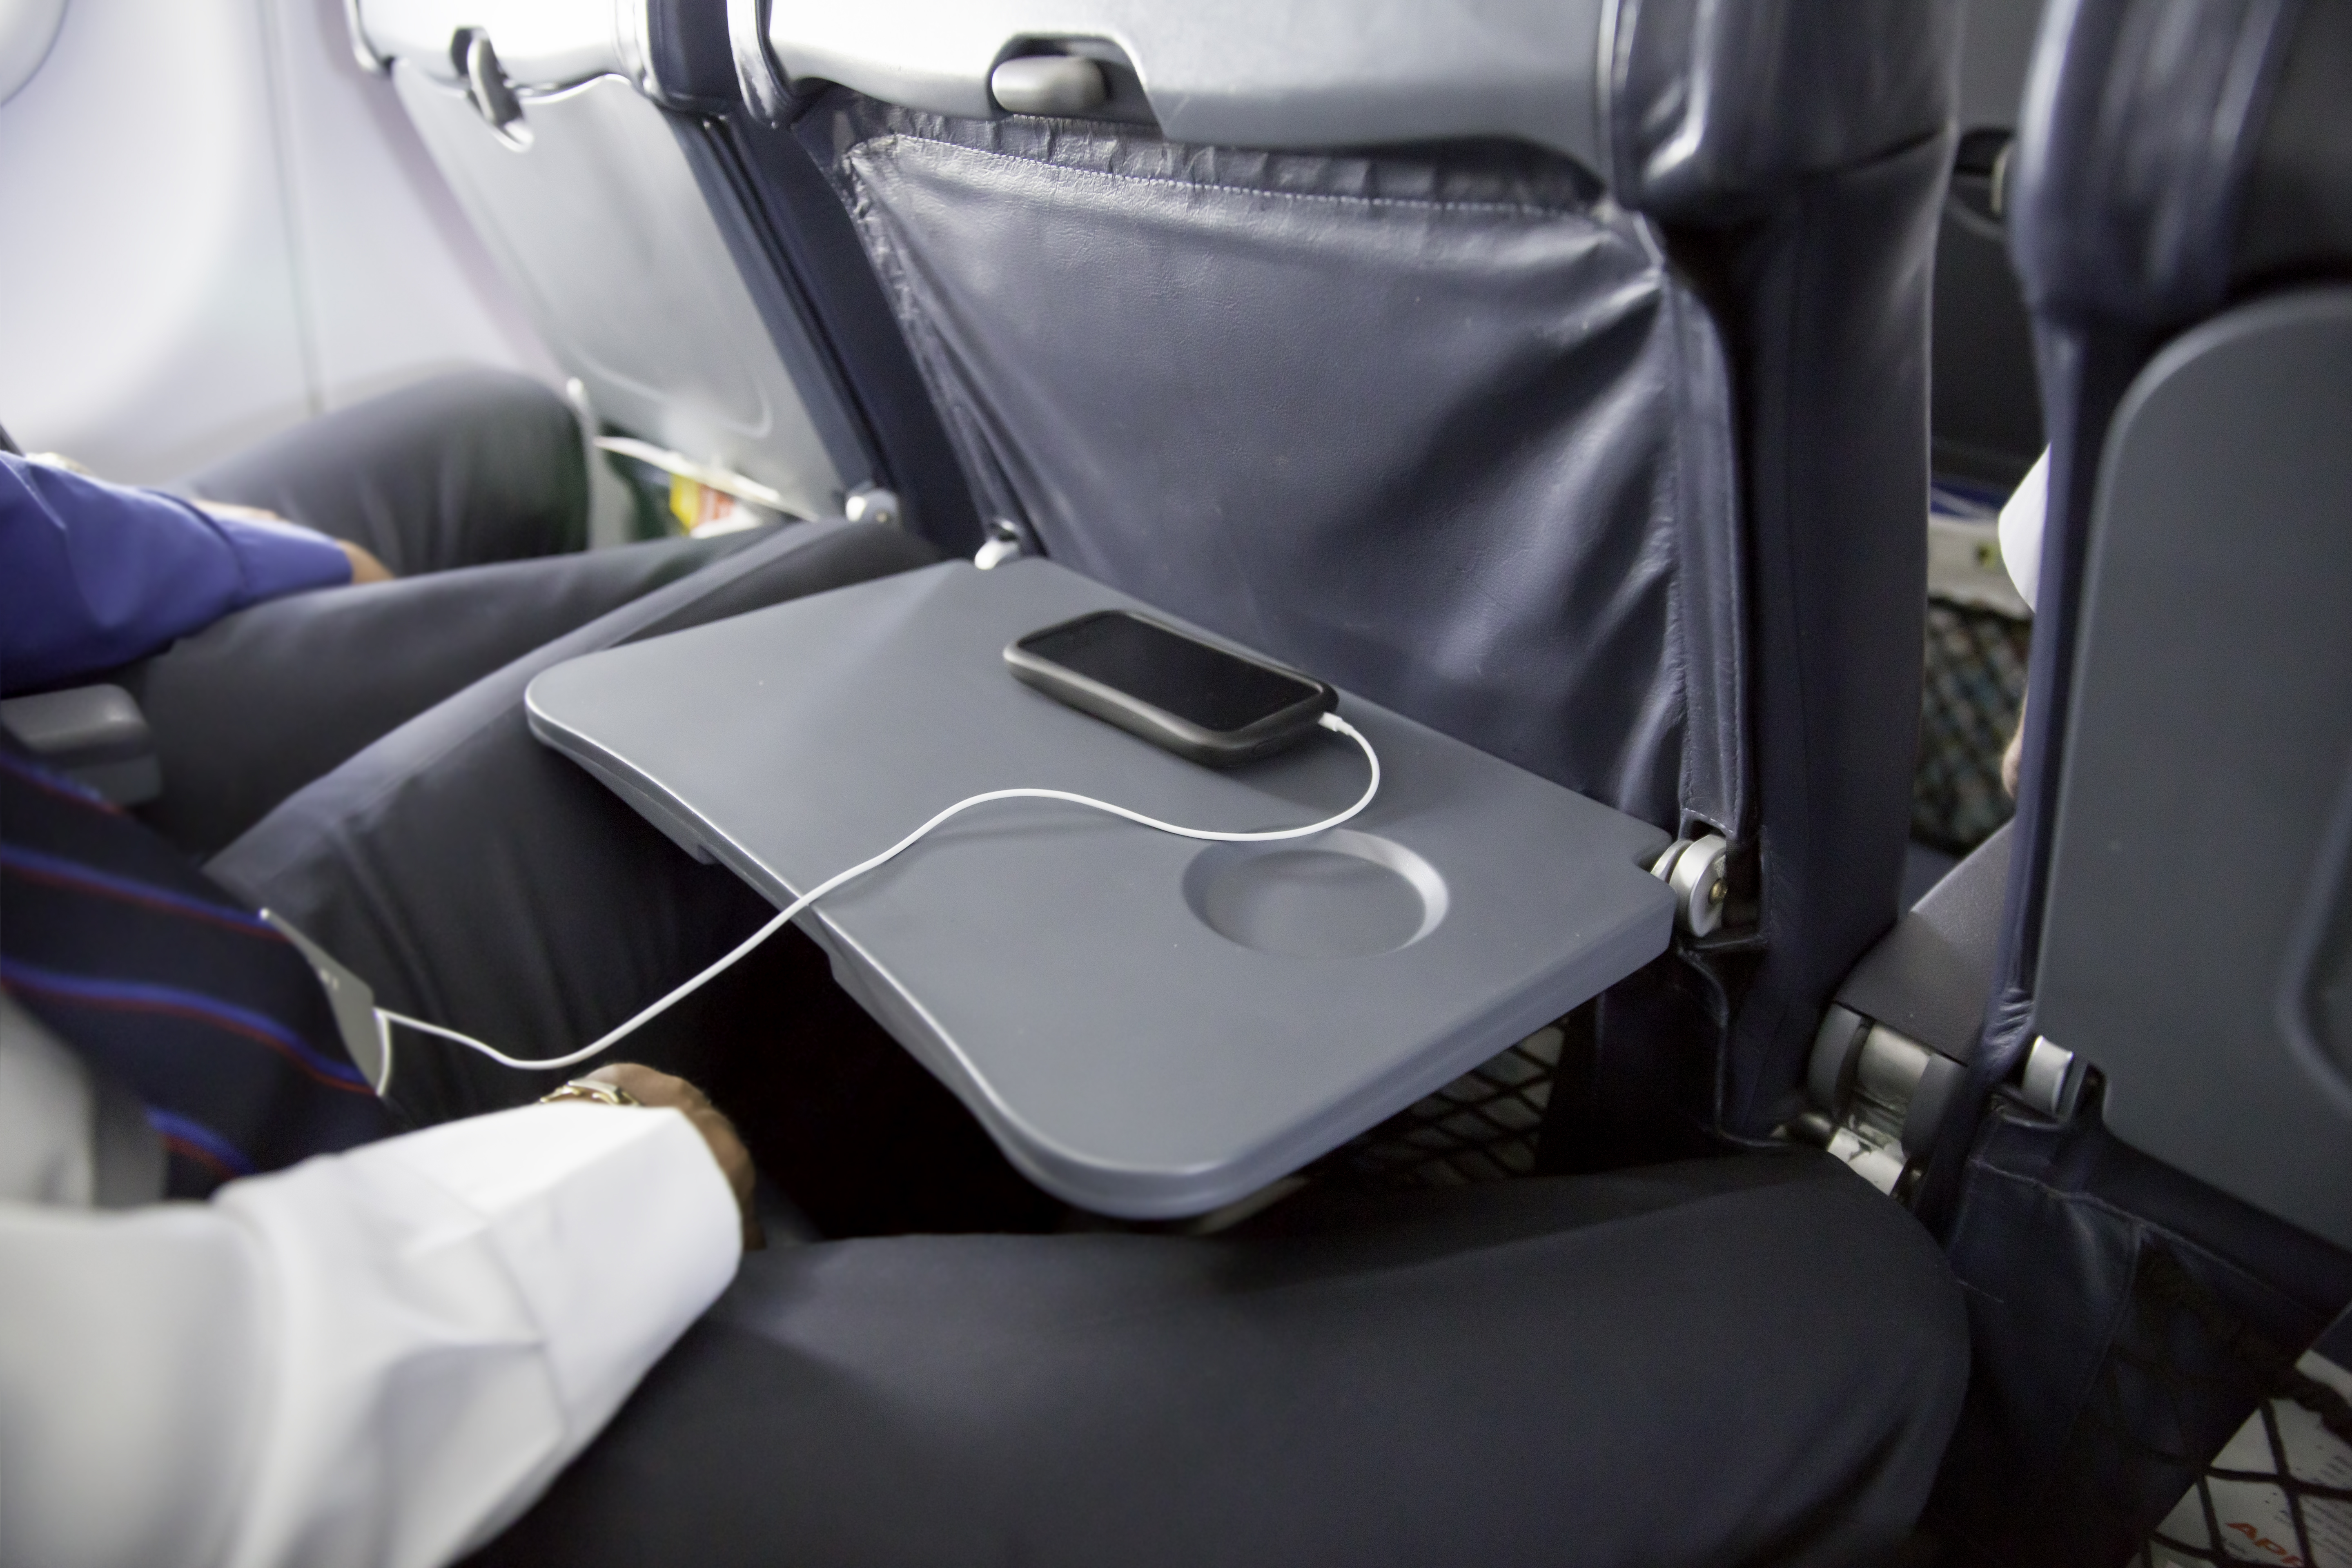 Airline introduces new product to make flying easier for tall people